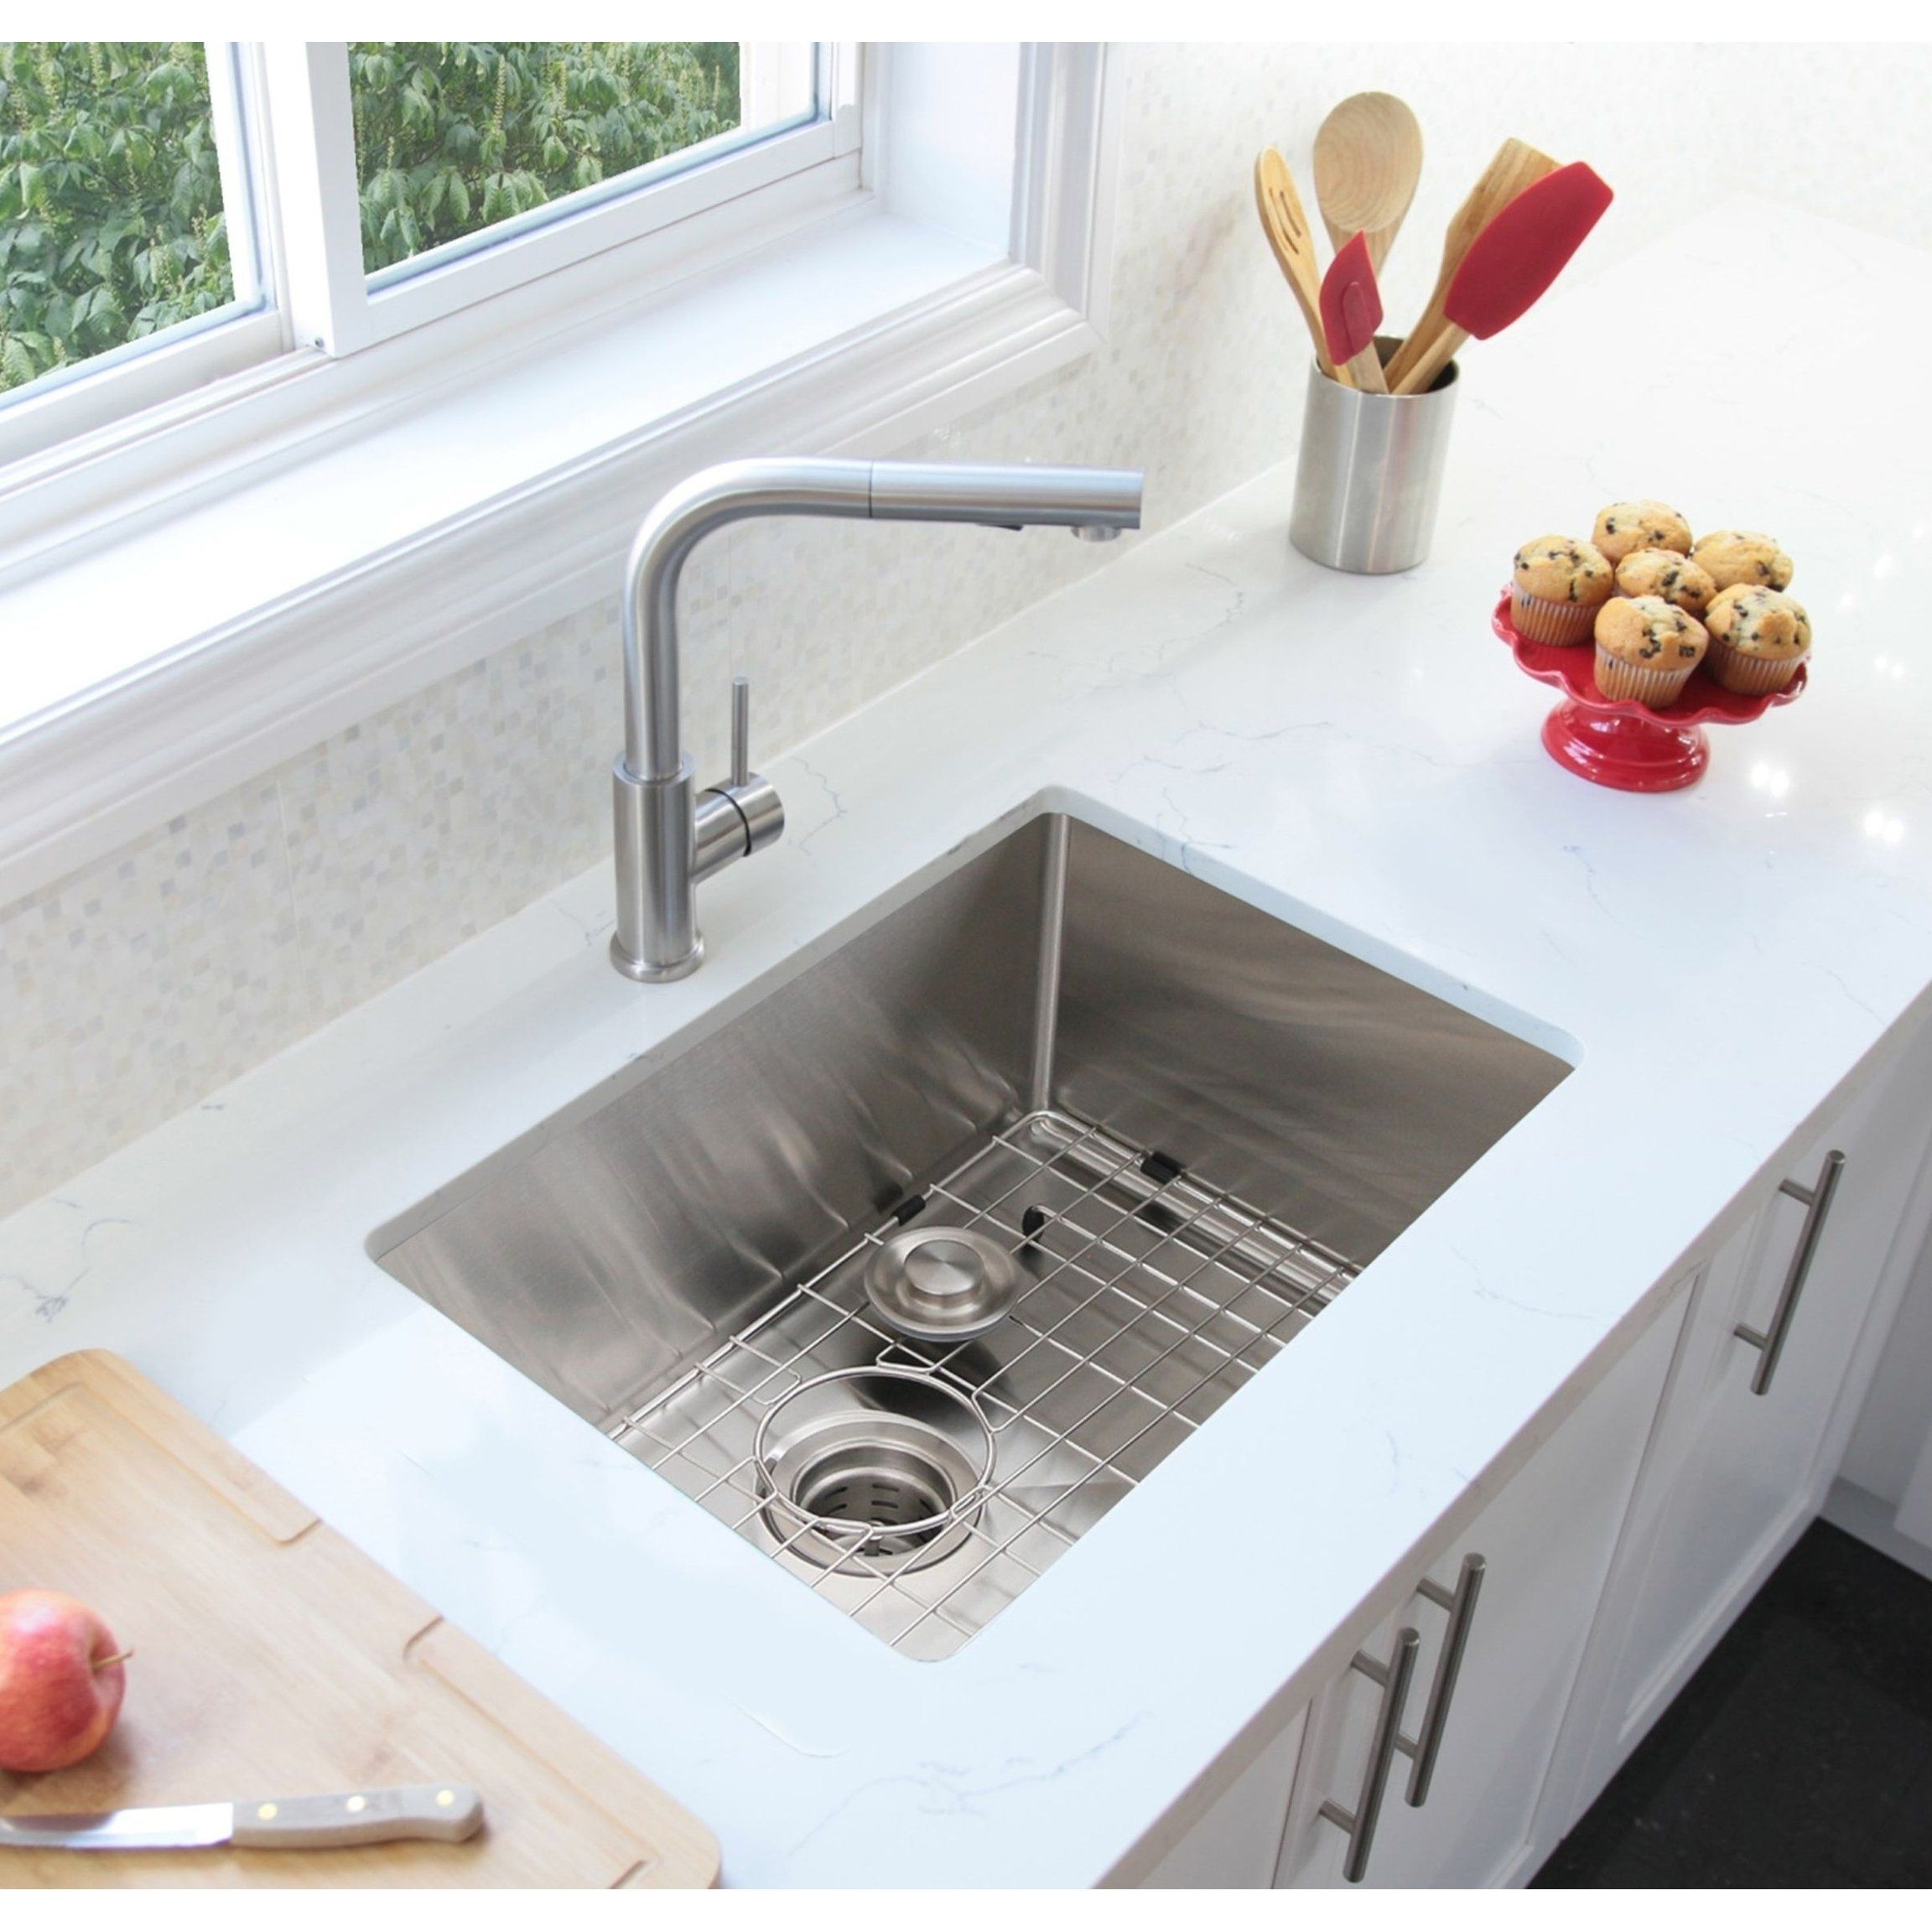 28 Undermount Single Bowl Kitchen Sink 16g Stainless Steel With